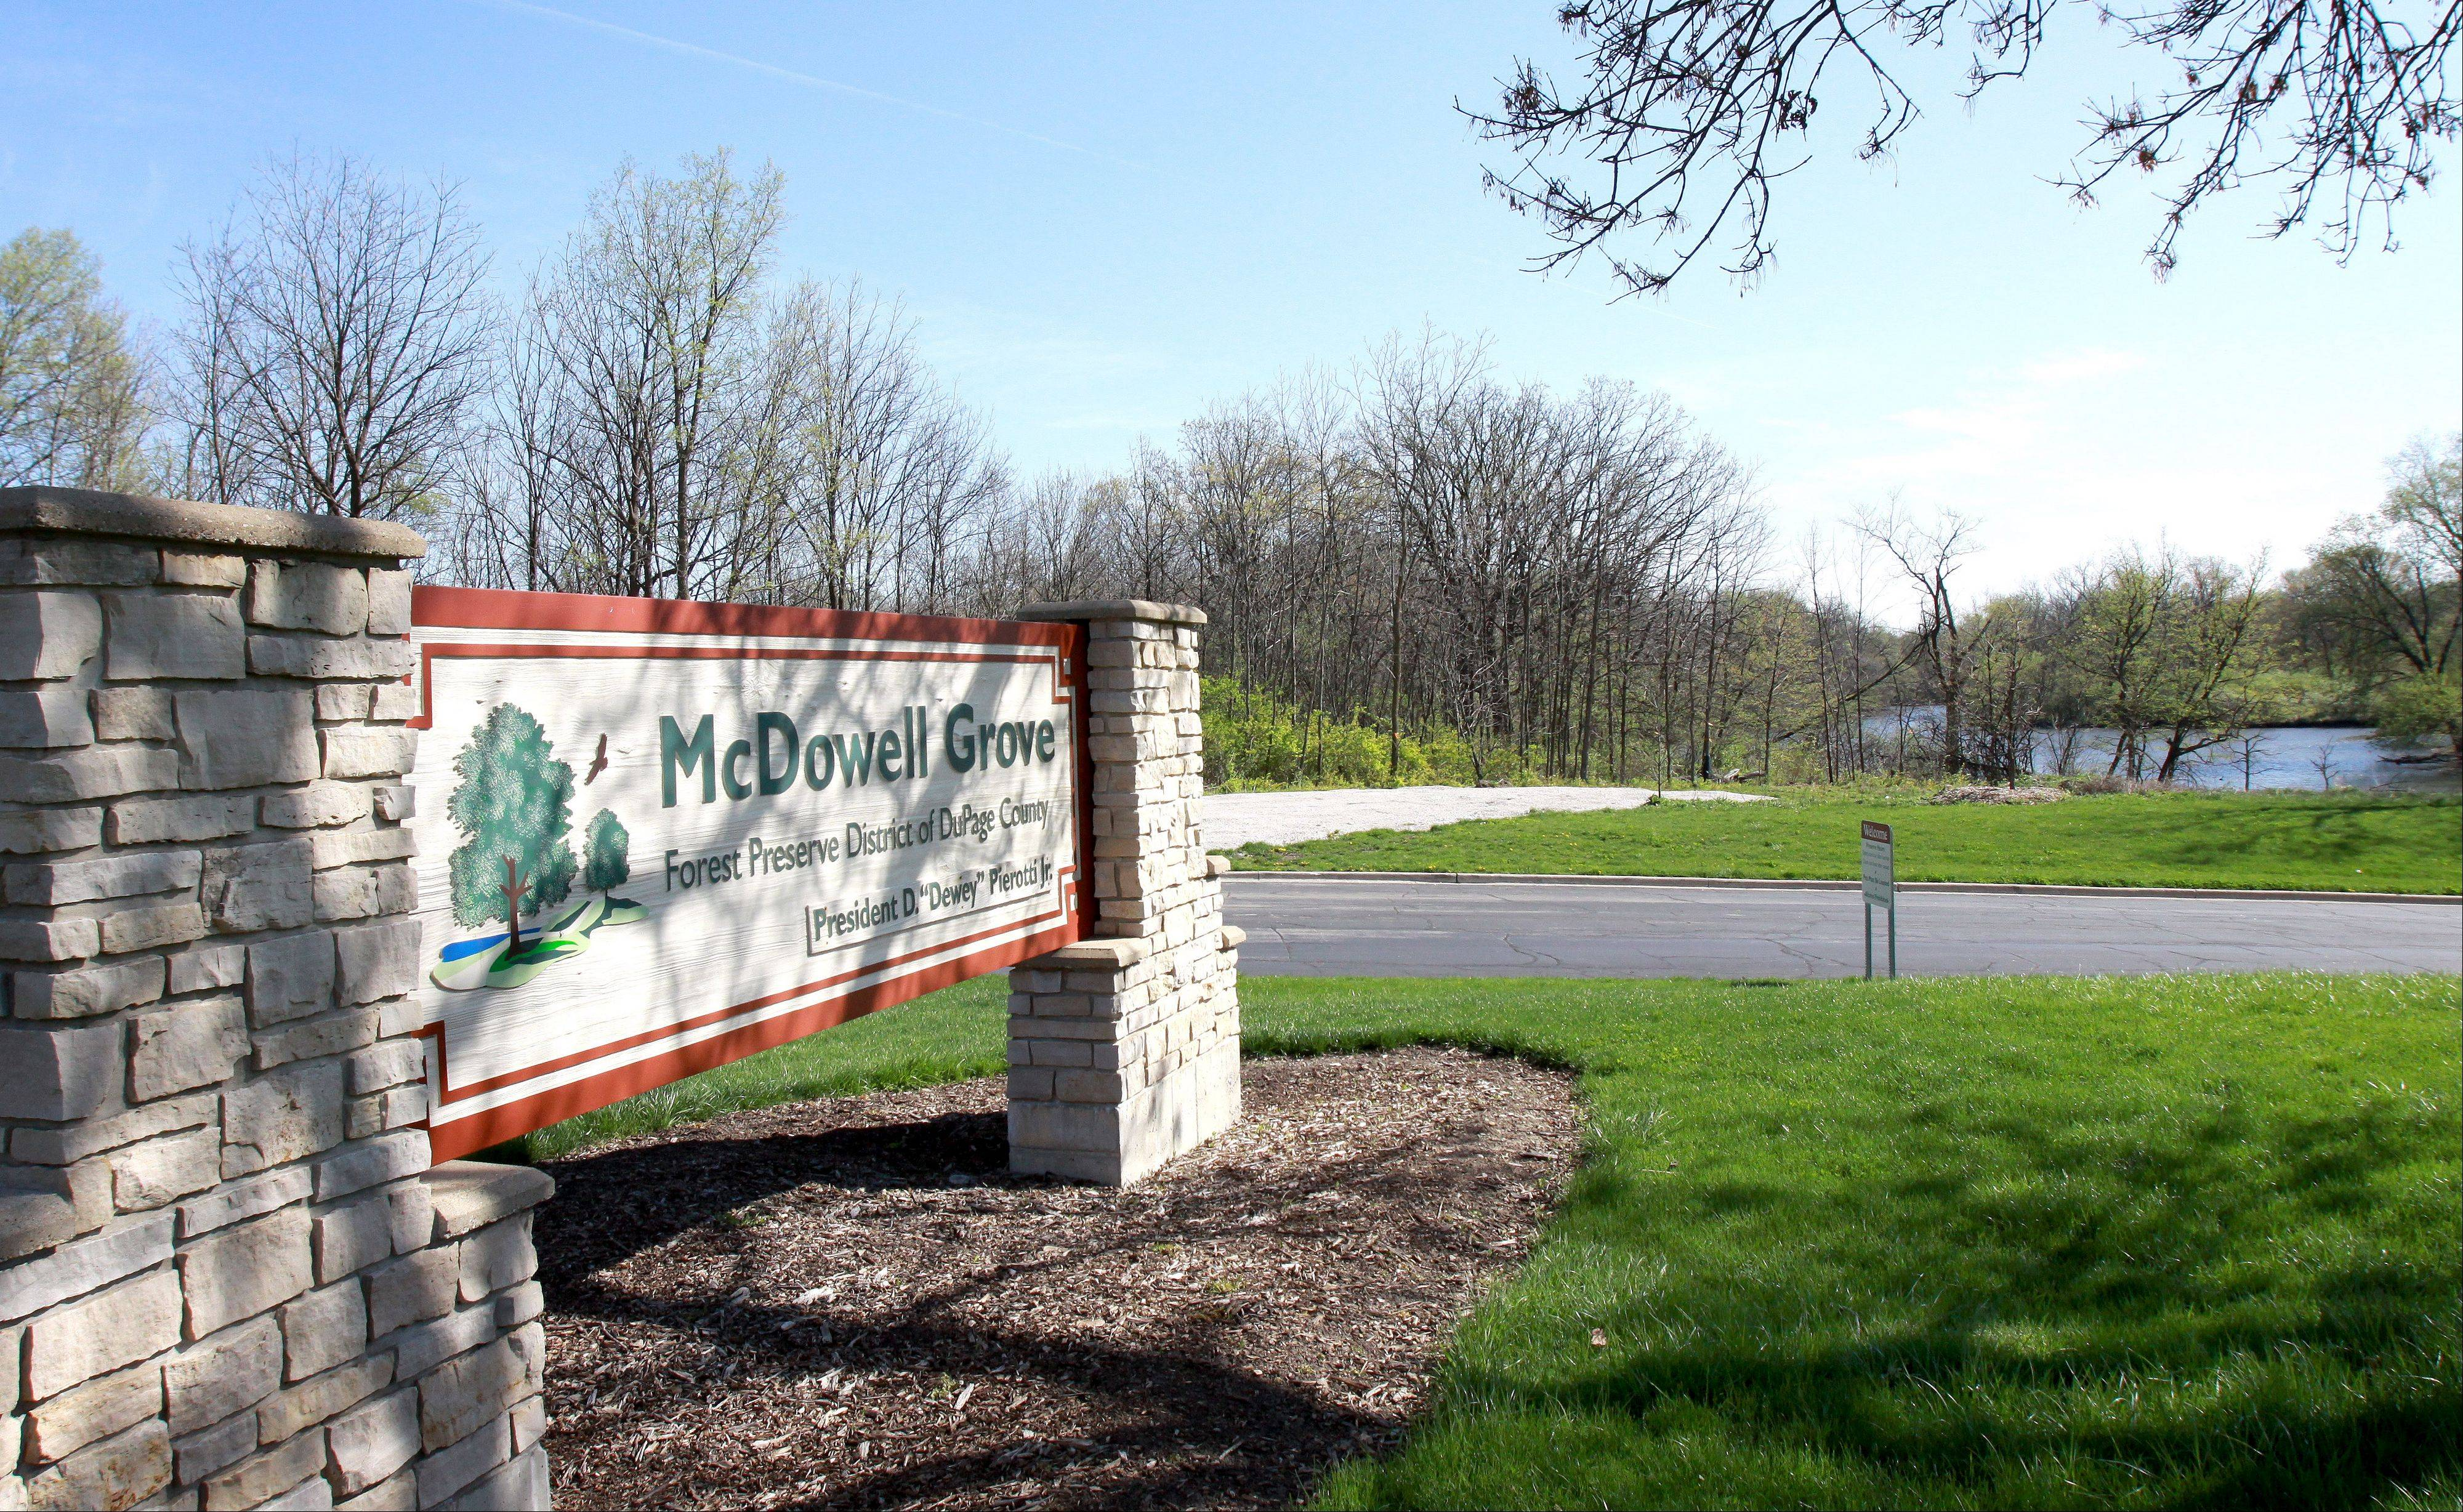 Crews will begin work on a $20 million project today to remove radioactive deposits along the West Branch of the DuPage River at McDowell Grove Forest Preserve near Naperville.